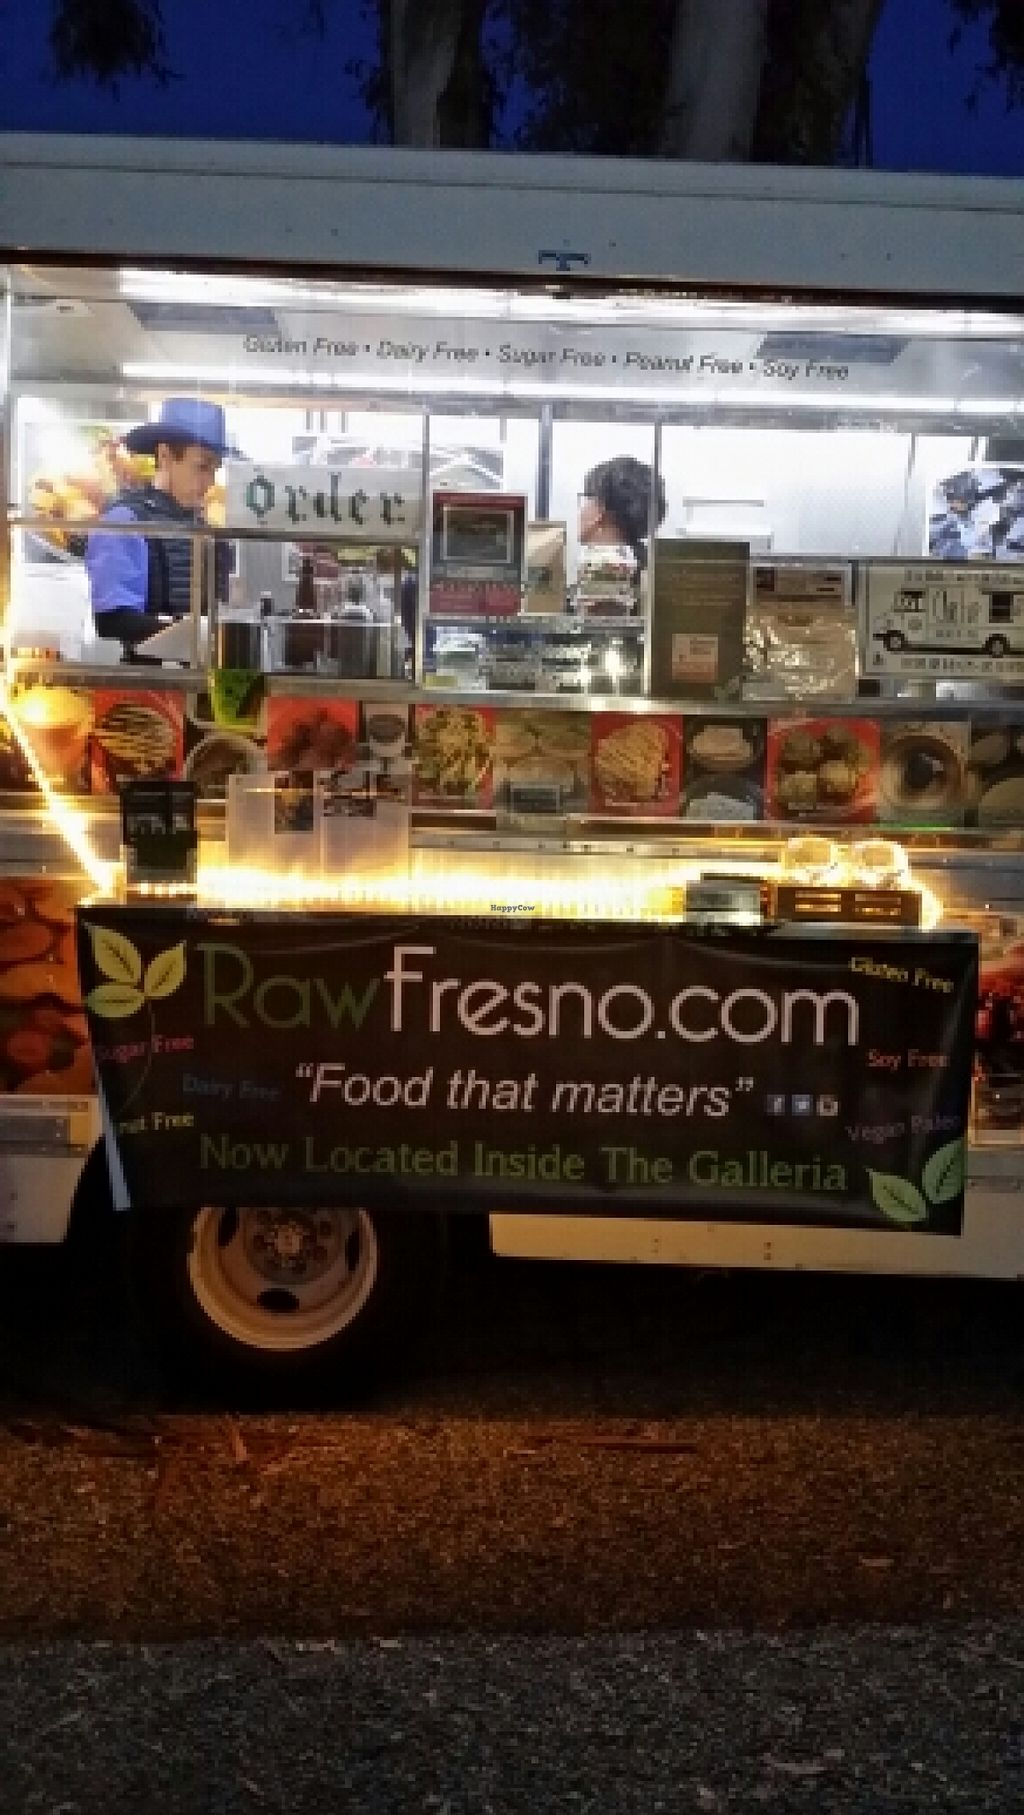 "Photo of Raw Fresno  by <a href=""/members/profile/catbone"">catbone</a> <br/>Truck Storefront <br/> February 20, 2016  - <a href='/contact/abuse/image/53709/137092'>Report</a>"